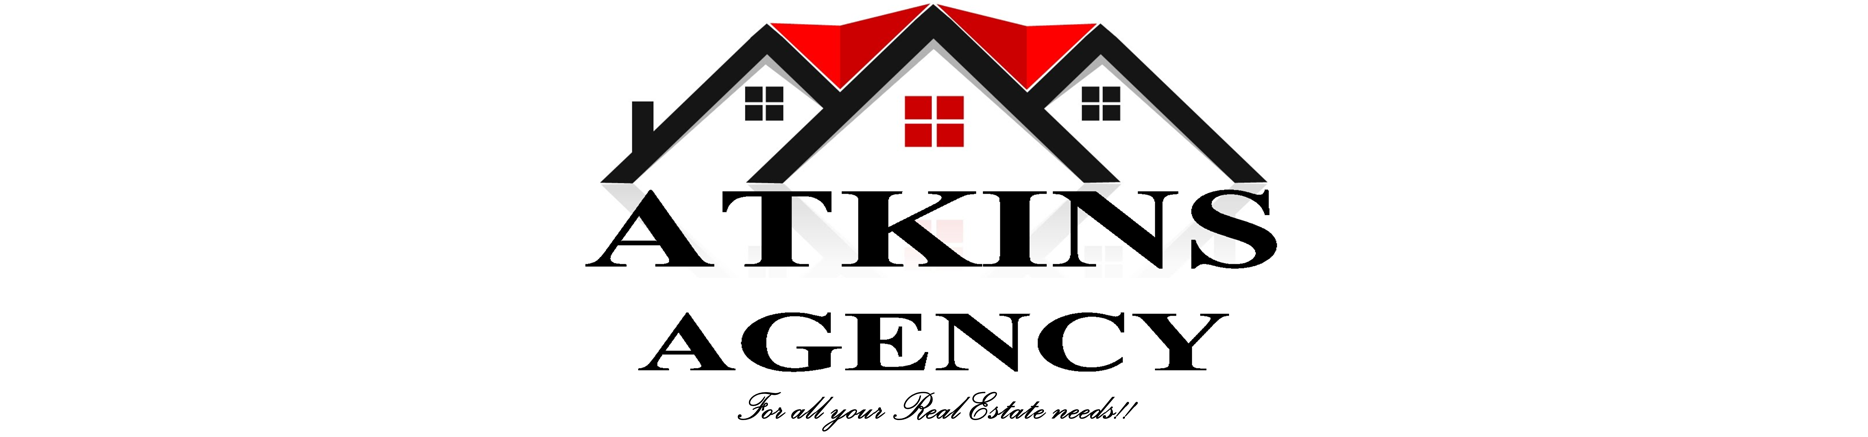 The Atkins Agency, Inc. - Baxley & Surrounding Area Homes for Sale!